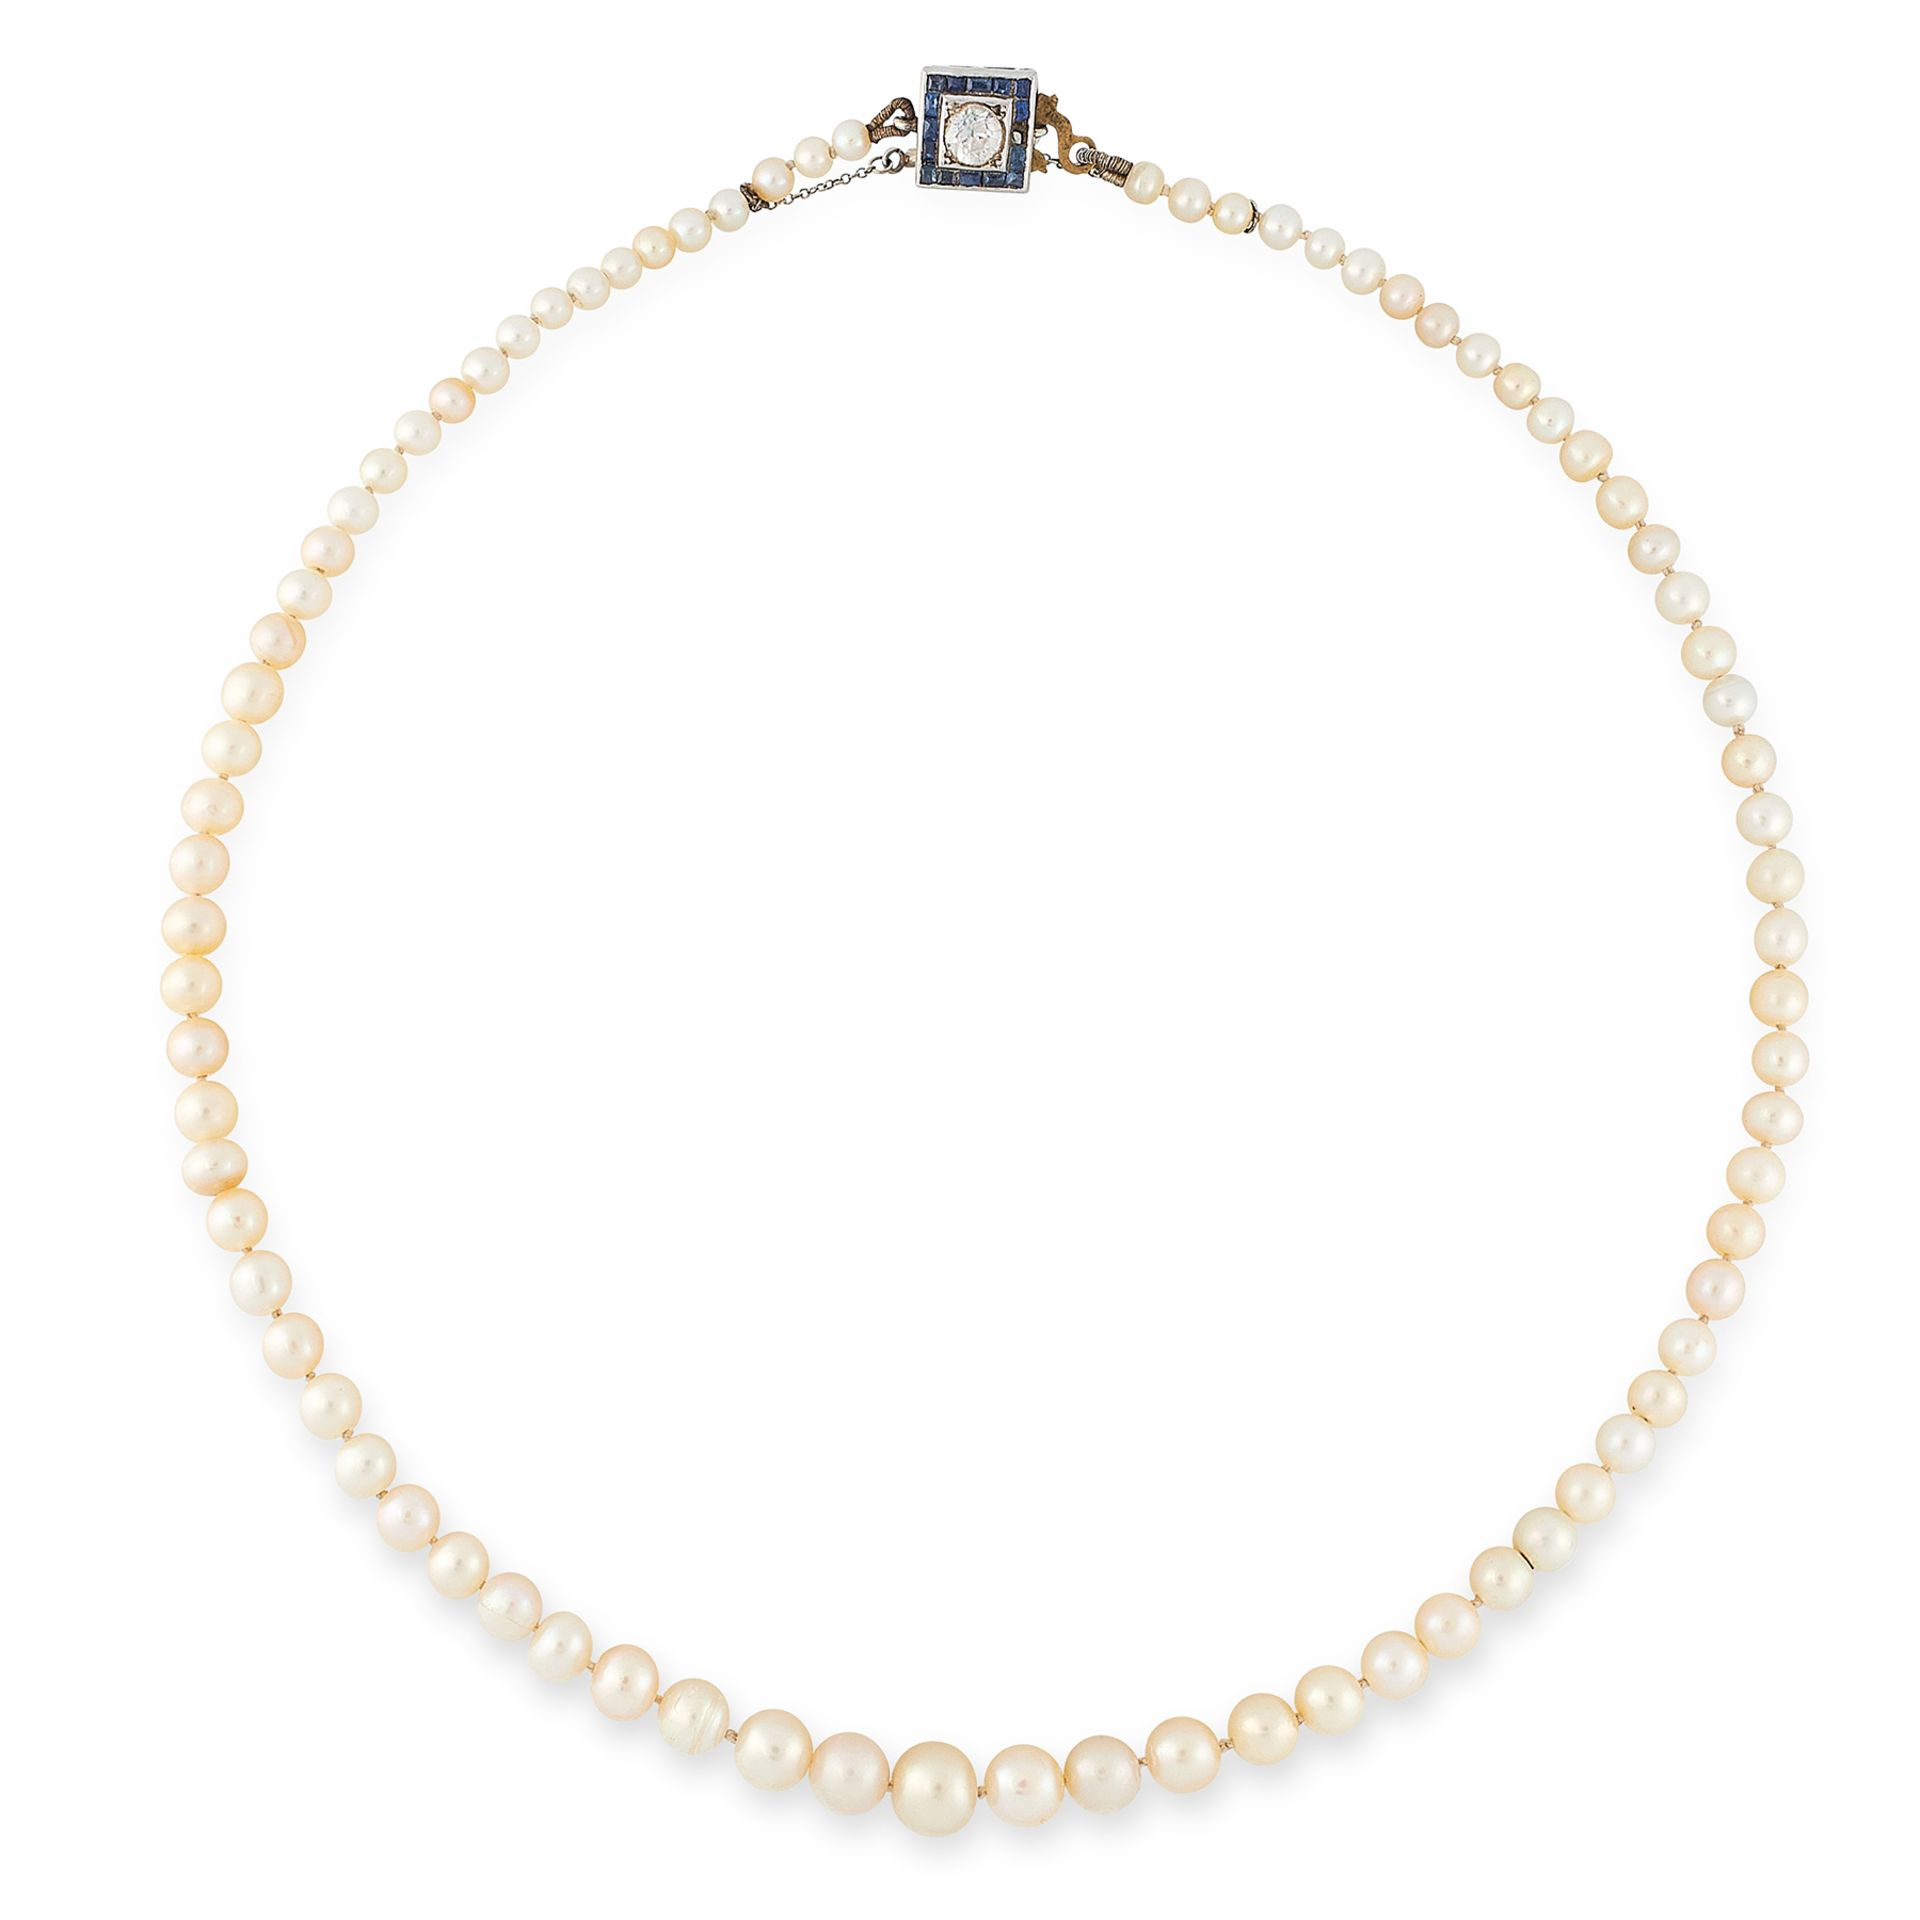 Los 36 - A NATURAL PEARL NECKLACE comprising a single row of eighty one pearls ranging 7.0-3.3mm, on a